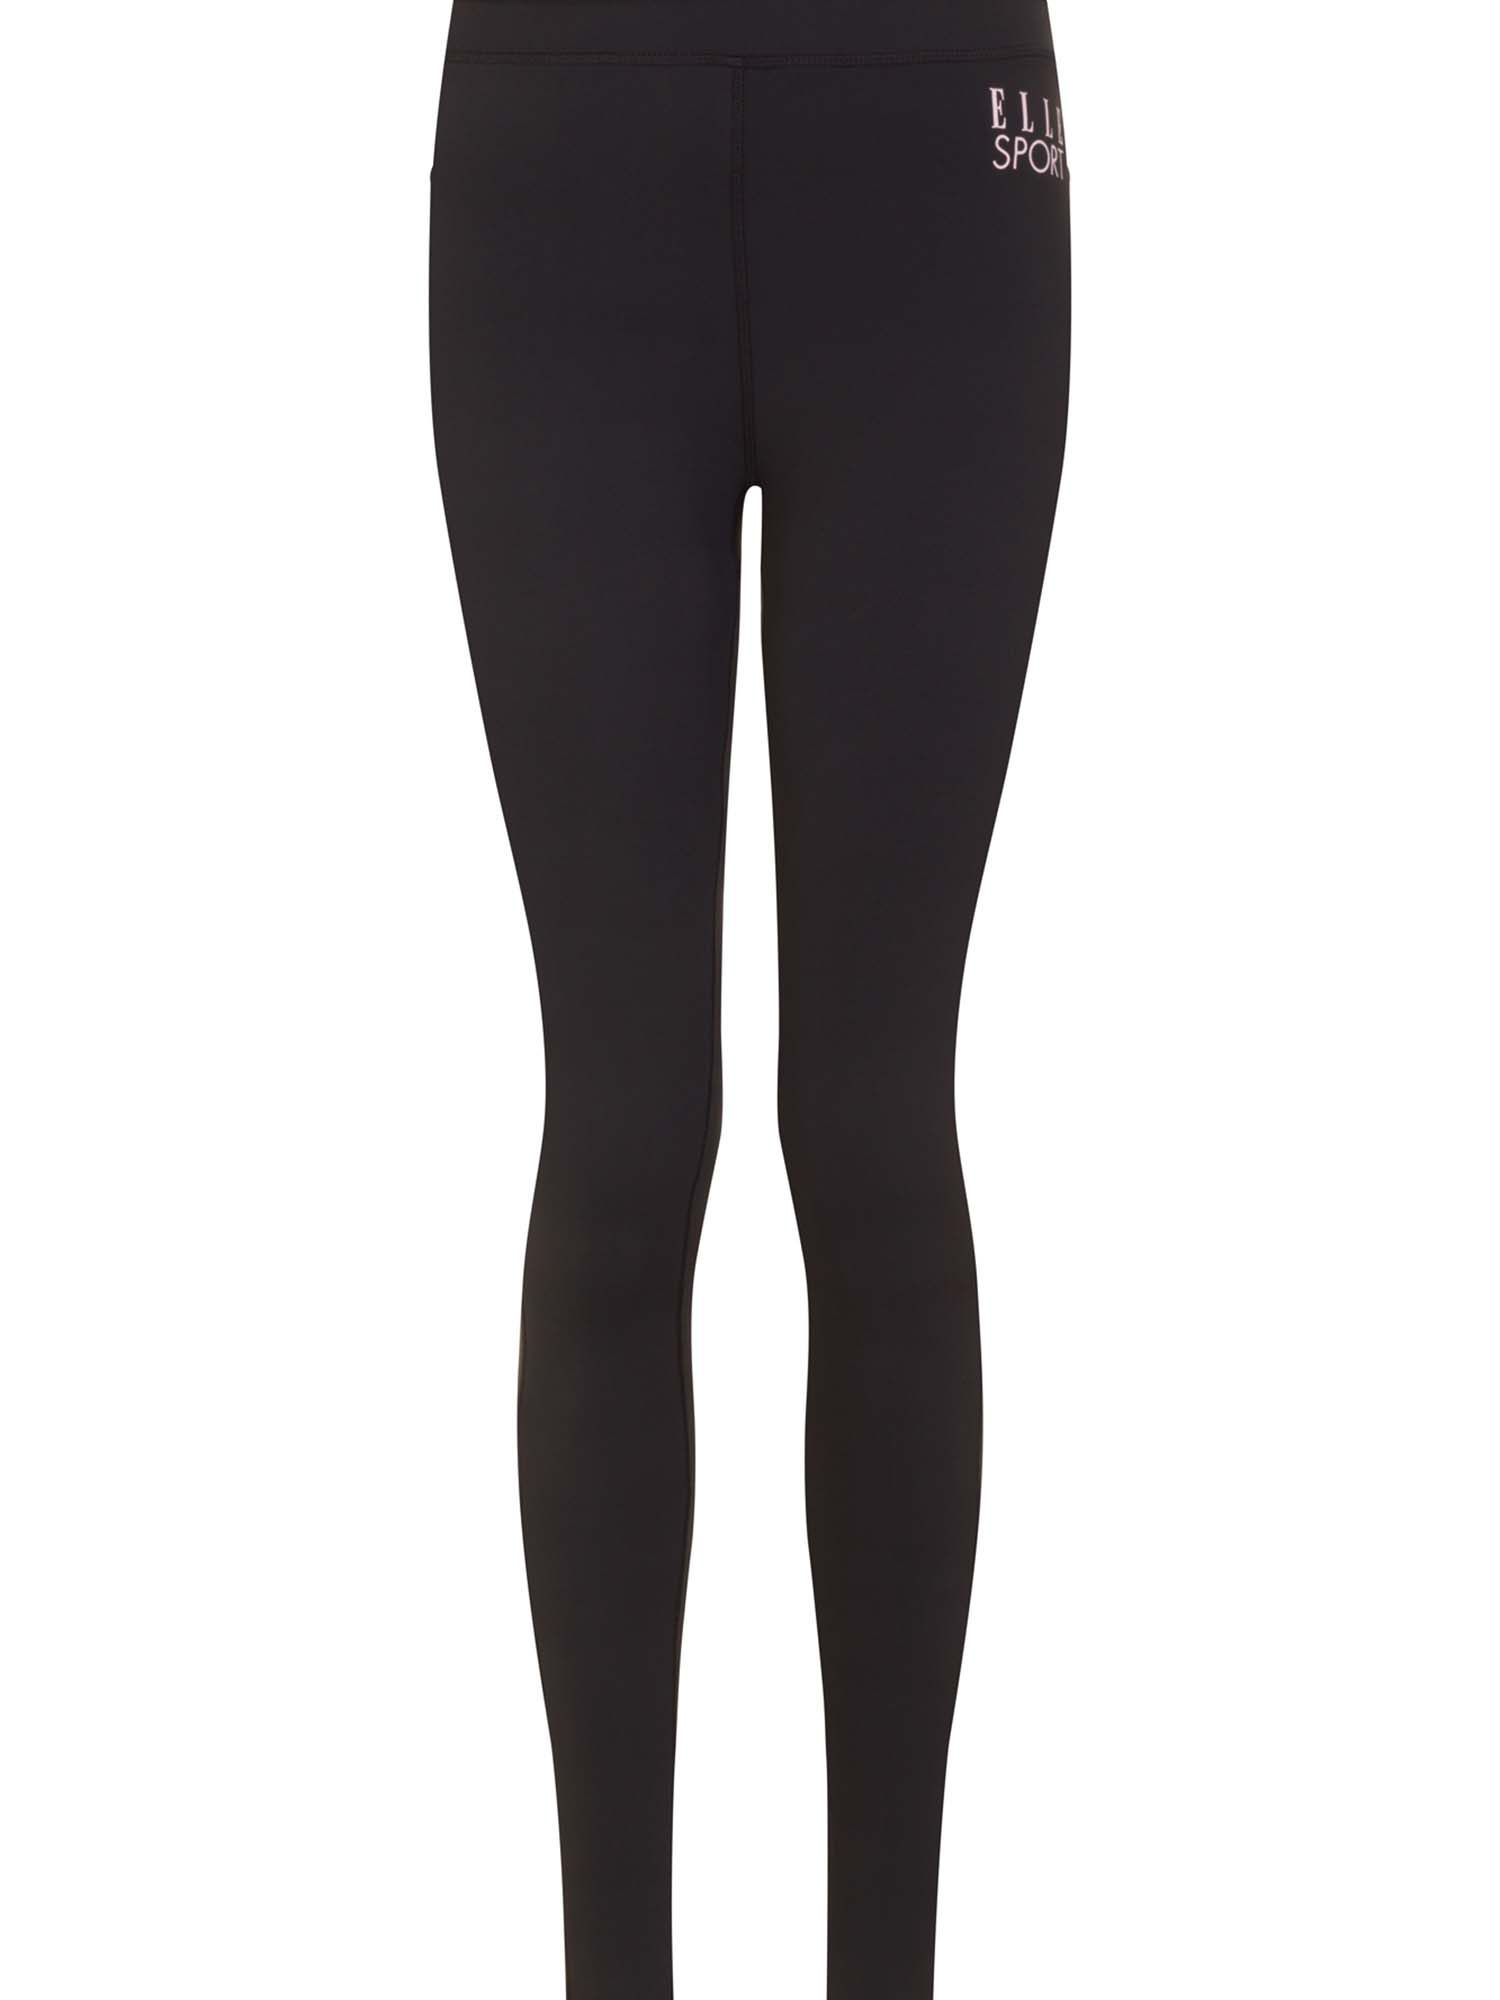 Elle Sport Warmwear Thermal Tight With Ankle Zip, Black